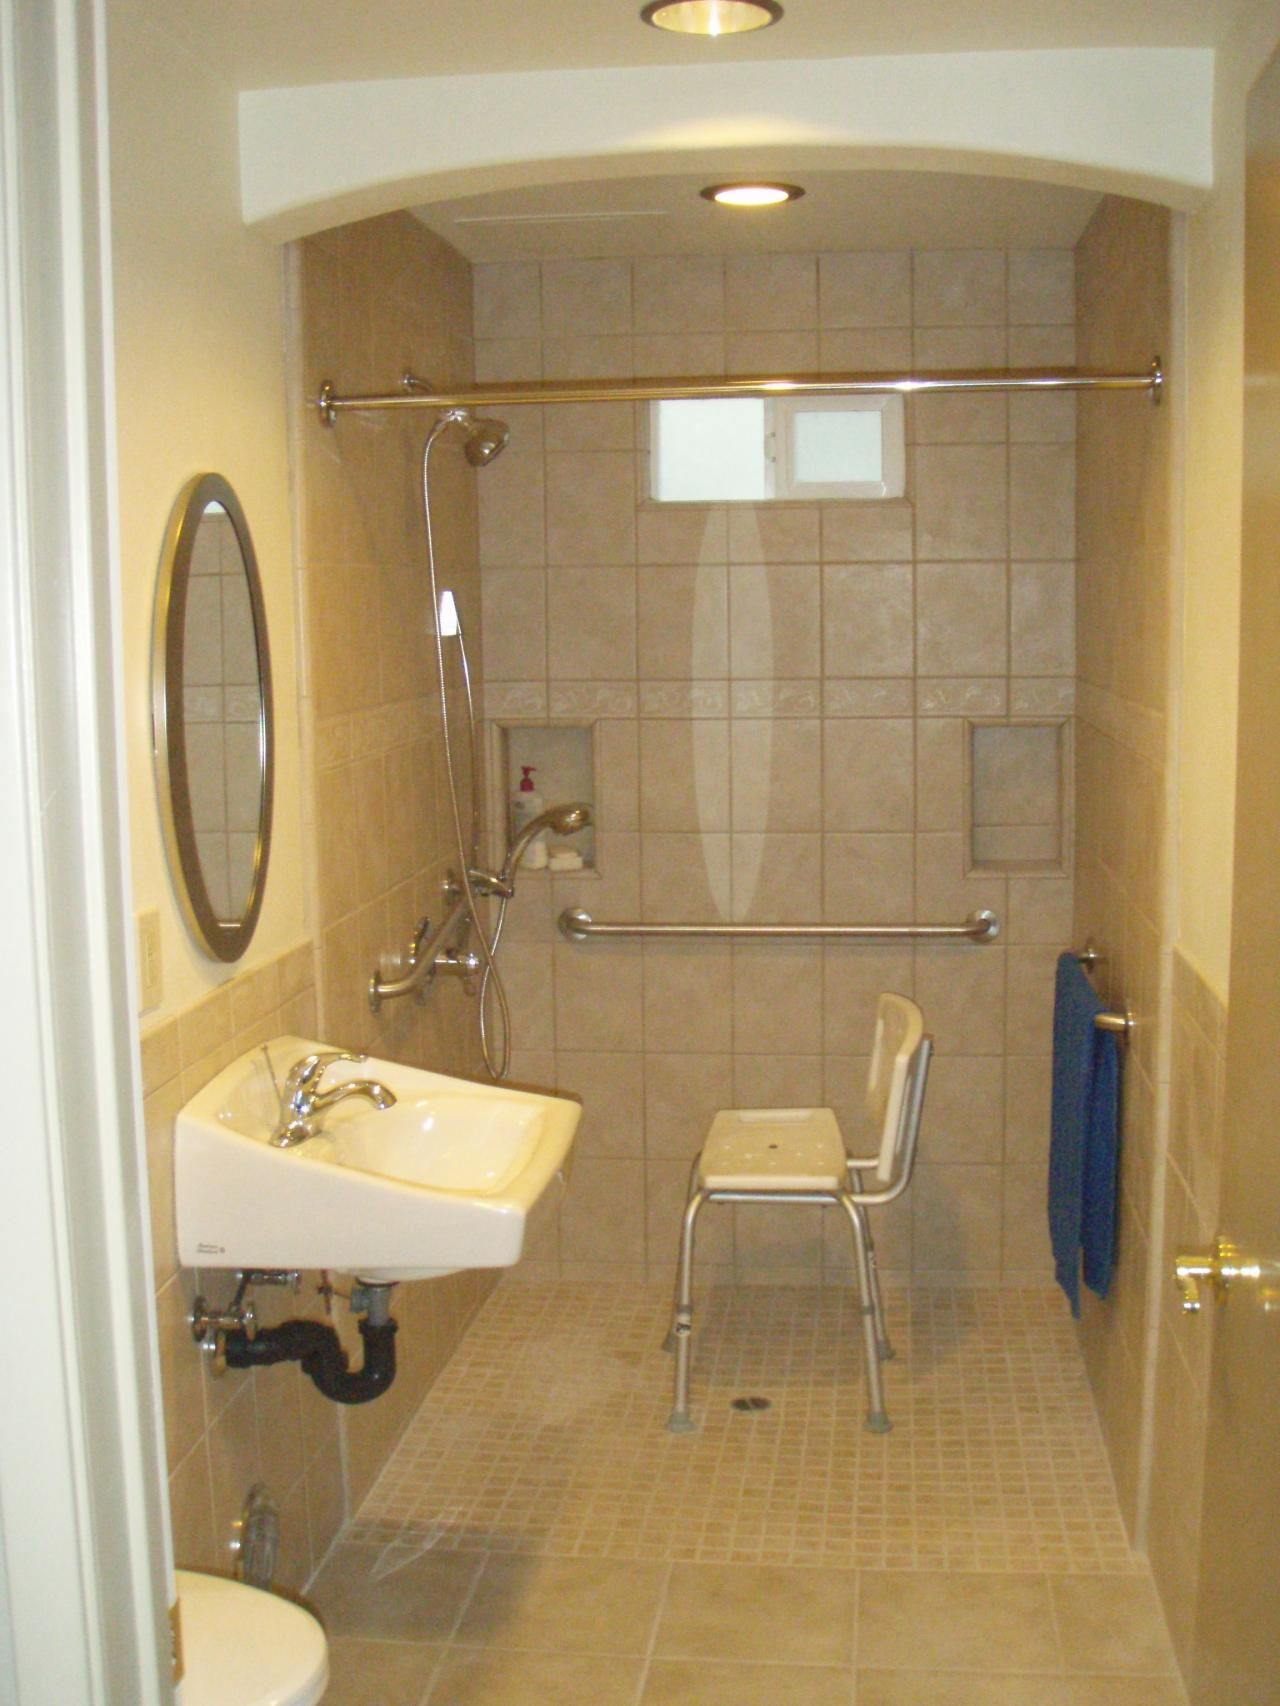 Bathroom Remodels For Handicapped | HANDICAPPED BATHROOM, Ms. Hayashi,  TORRANCE 11 09